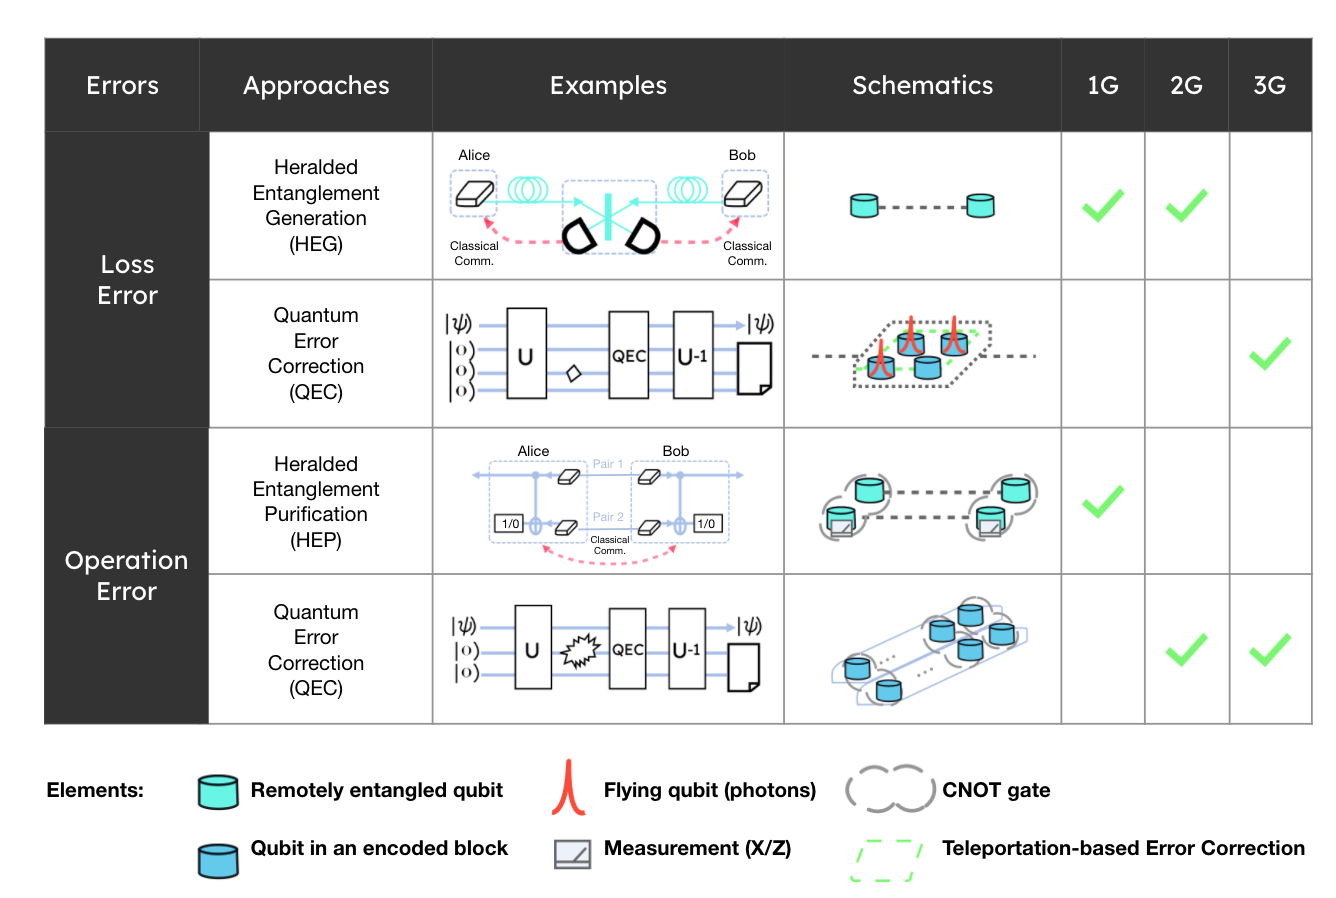 Diagram showing how quantum repeaters will improve over time to enable new applications